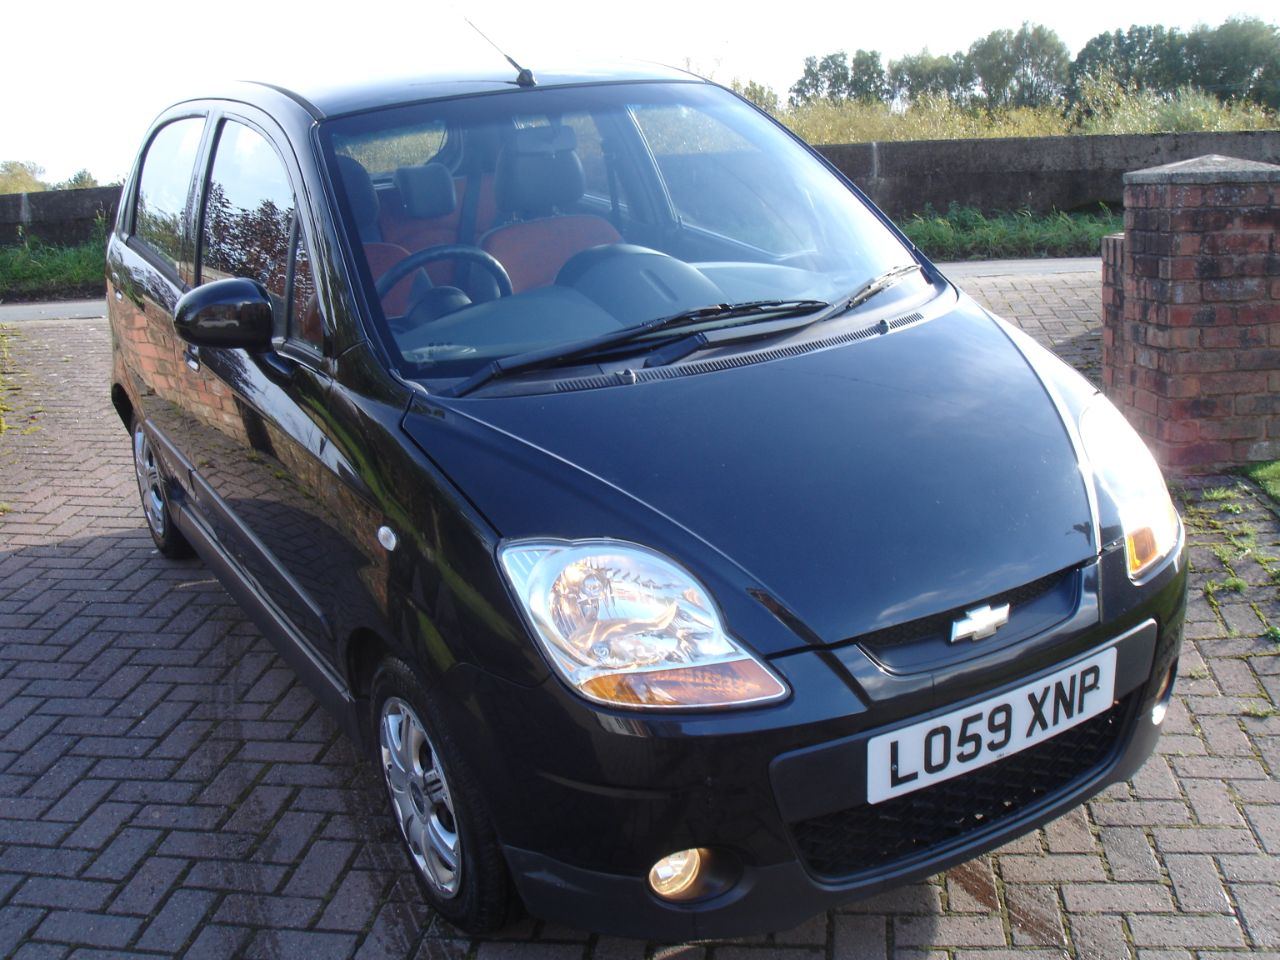 Chevrolet Matiz 1.0 SE PLUS 5dr Hatchback Petrol Metallic Black at Level Pitch Selby